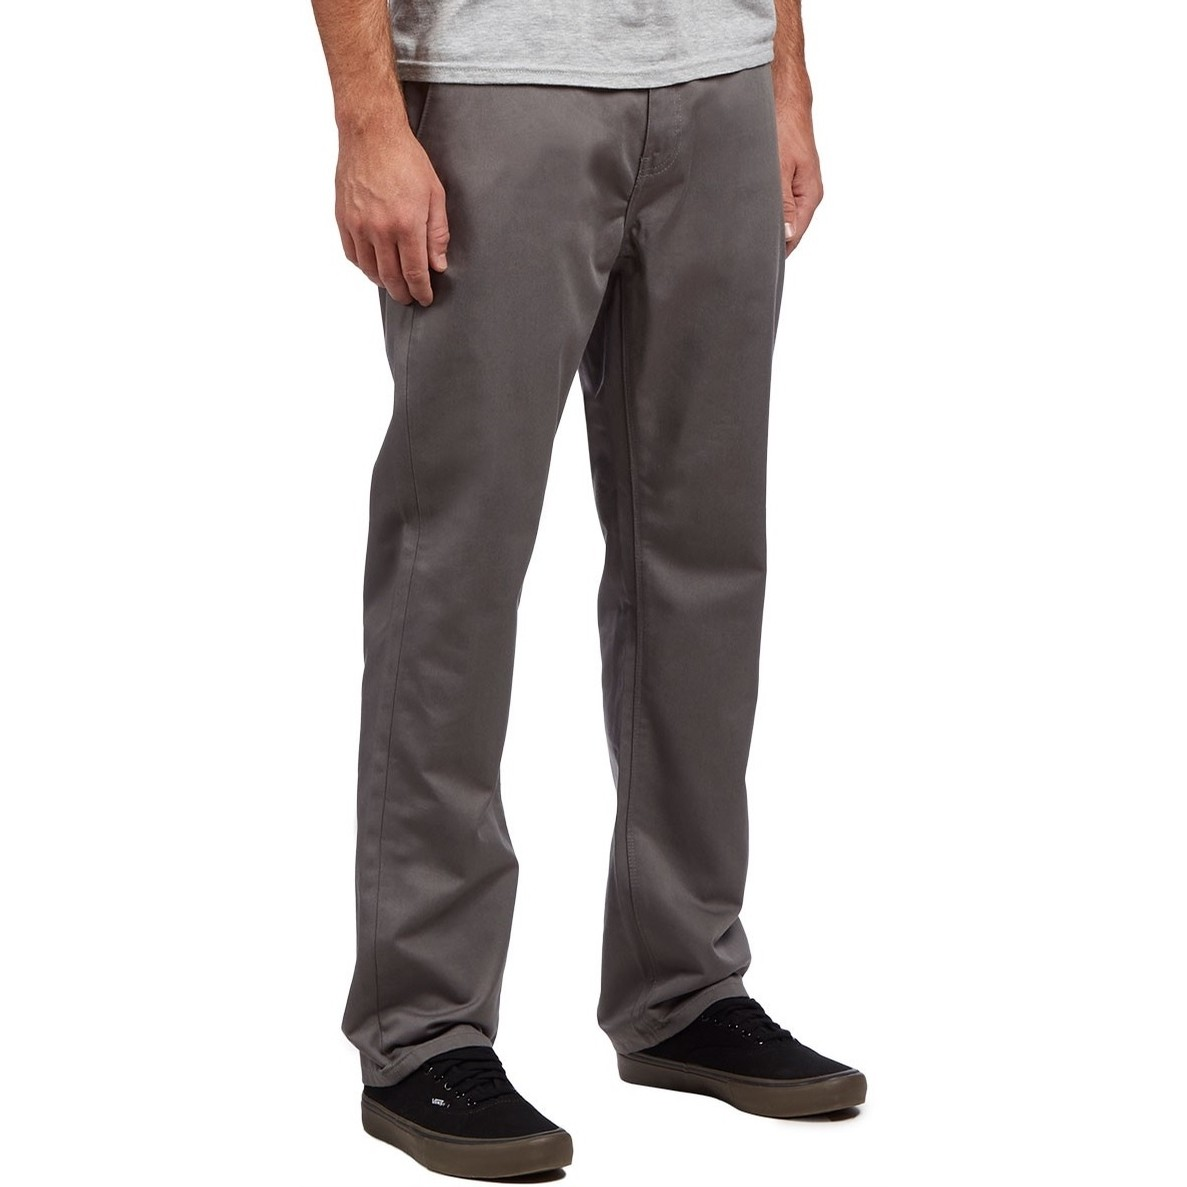 KR3W Klassic Rigid Chino Pant (Charcoal)